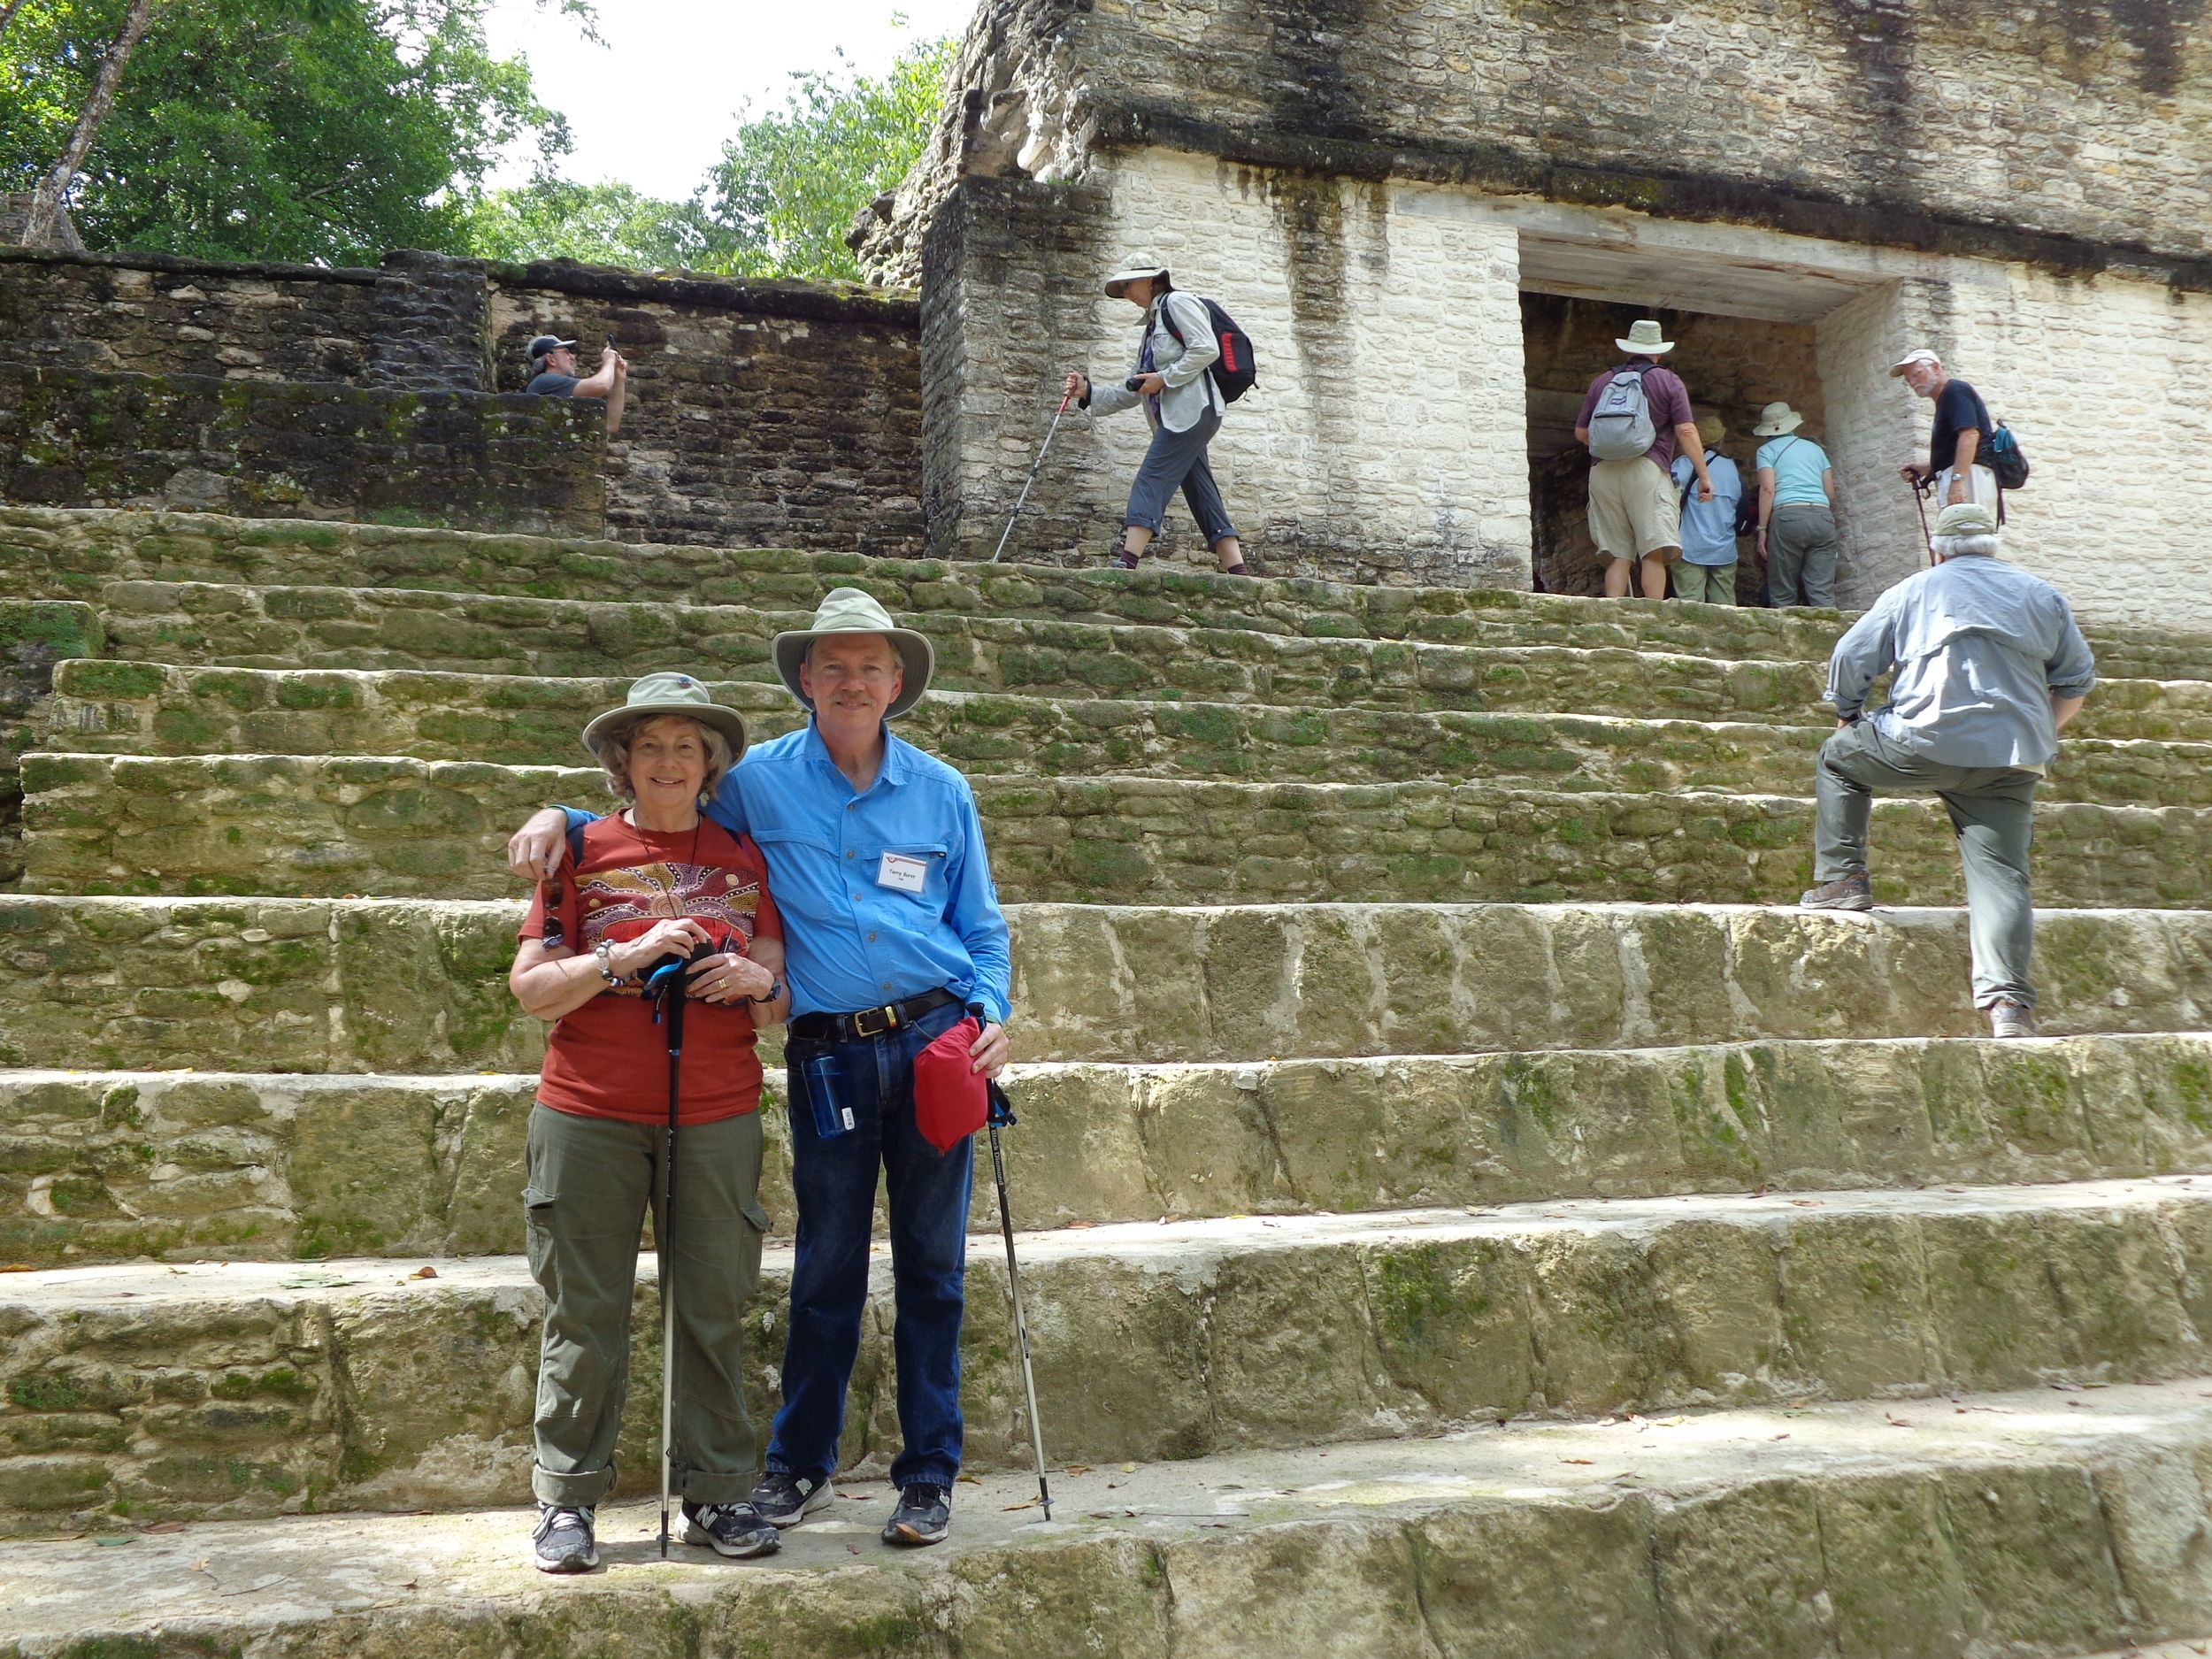 The author and her husband at Cahal Pech Maya site, Belize.